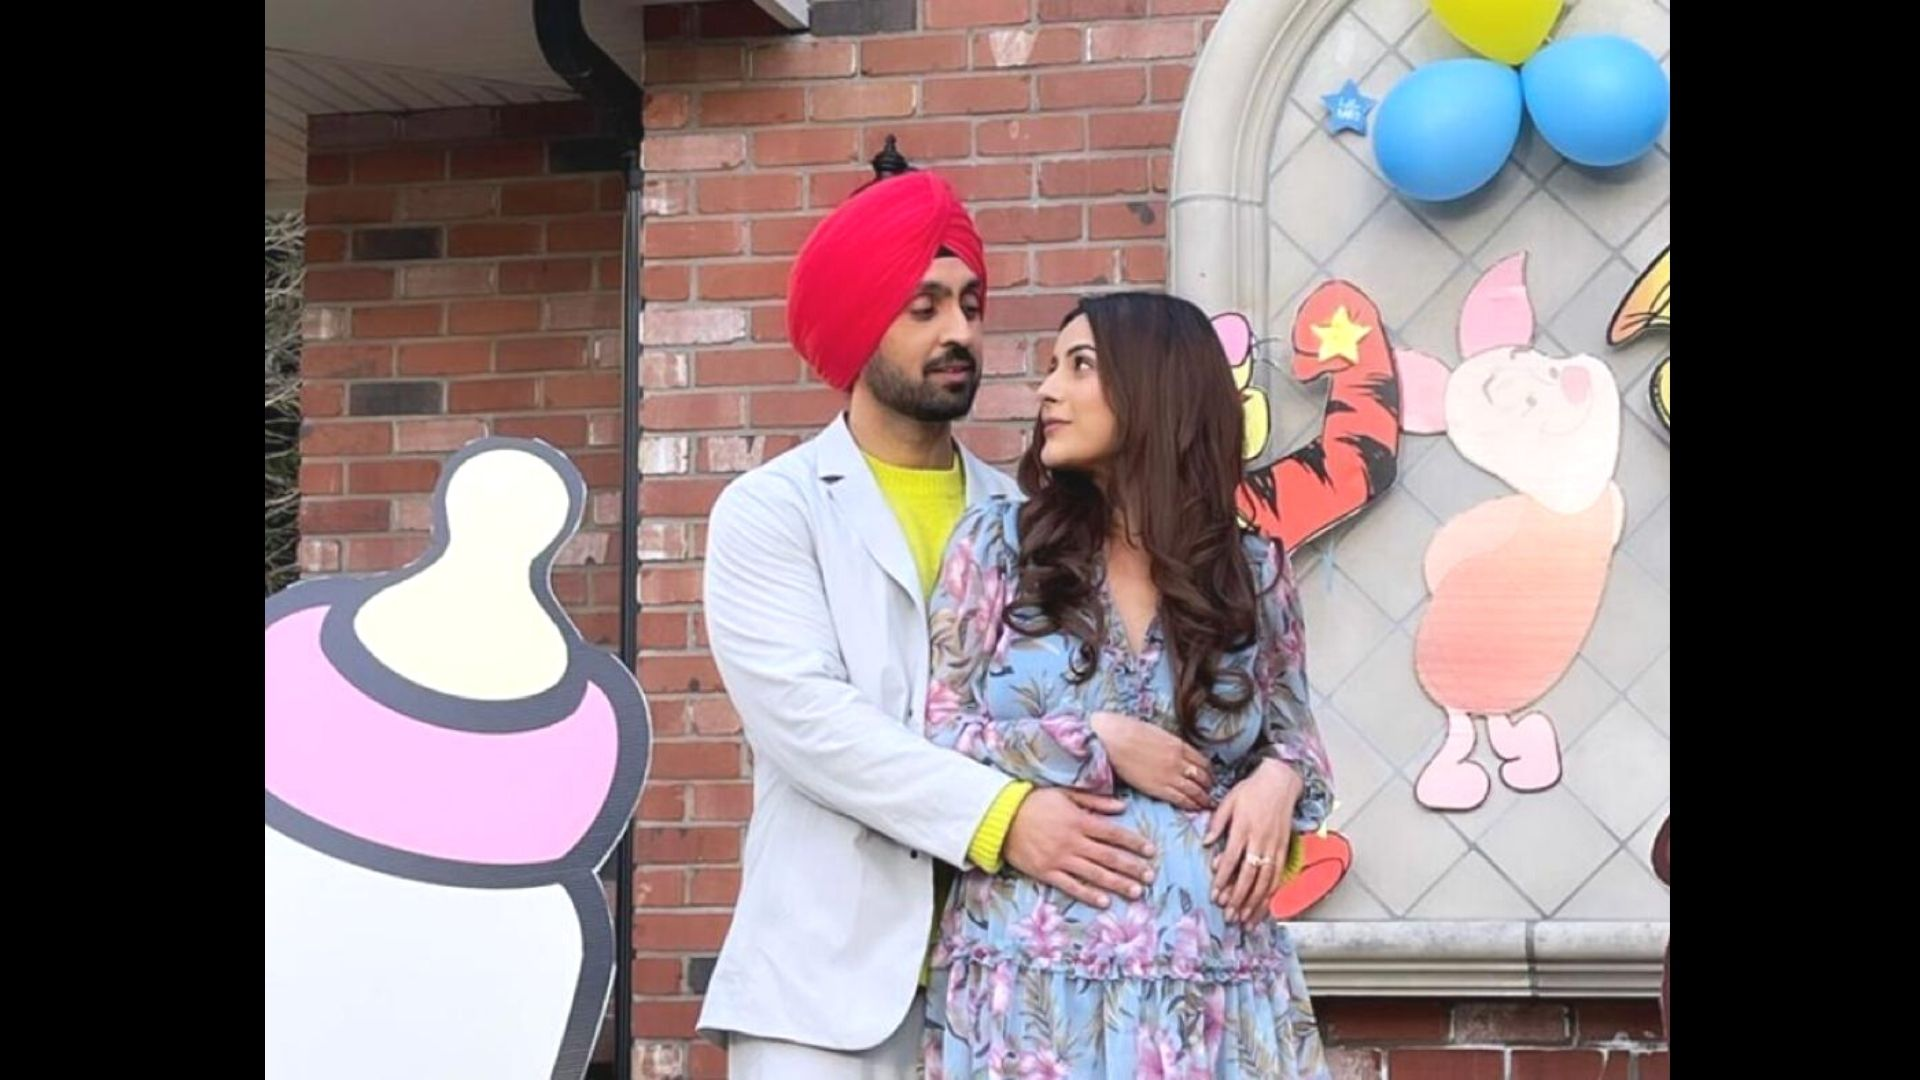 Shehnaaz Gill's Upcoming Film Honsla Rakh Trailer Out; Actress's First Glimpses Leave Us Asking For More Of Her On The Big Screen